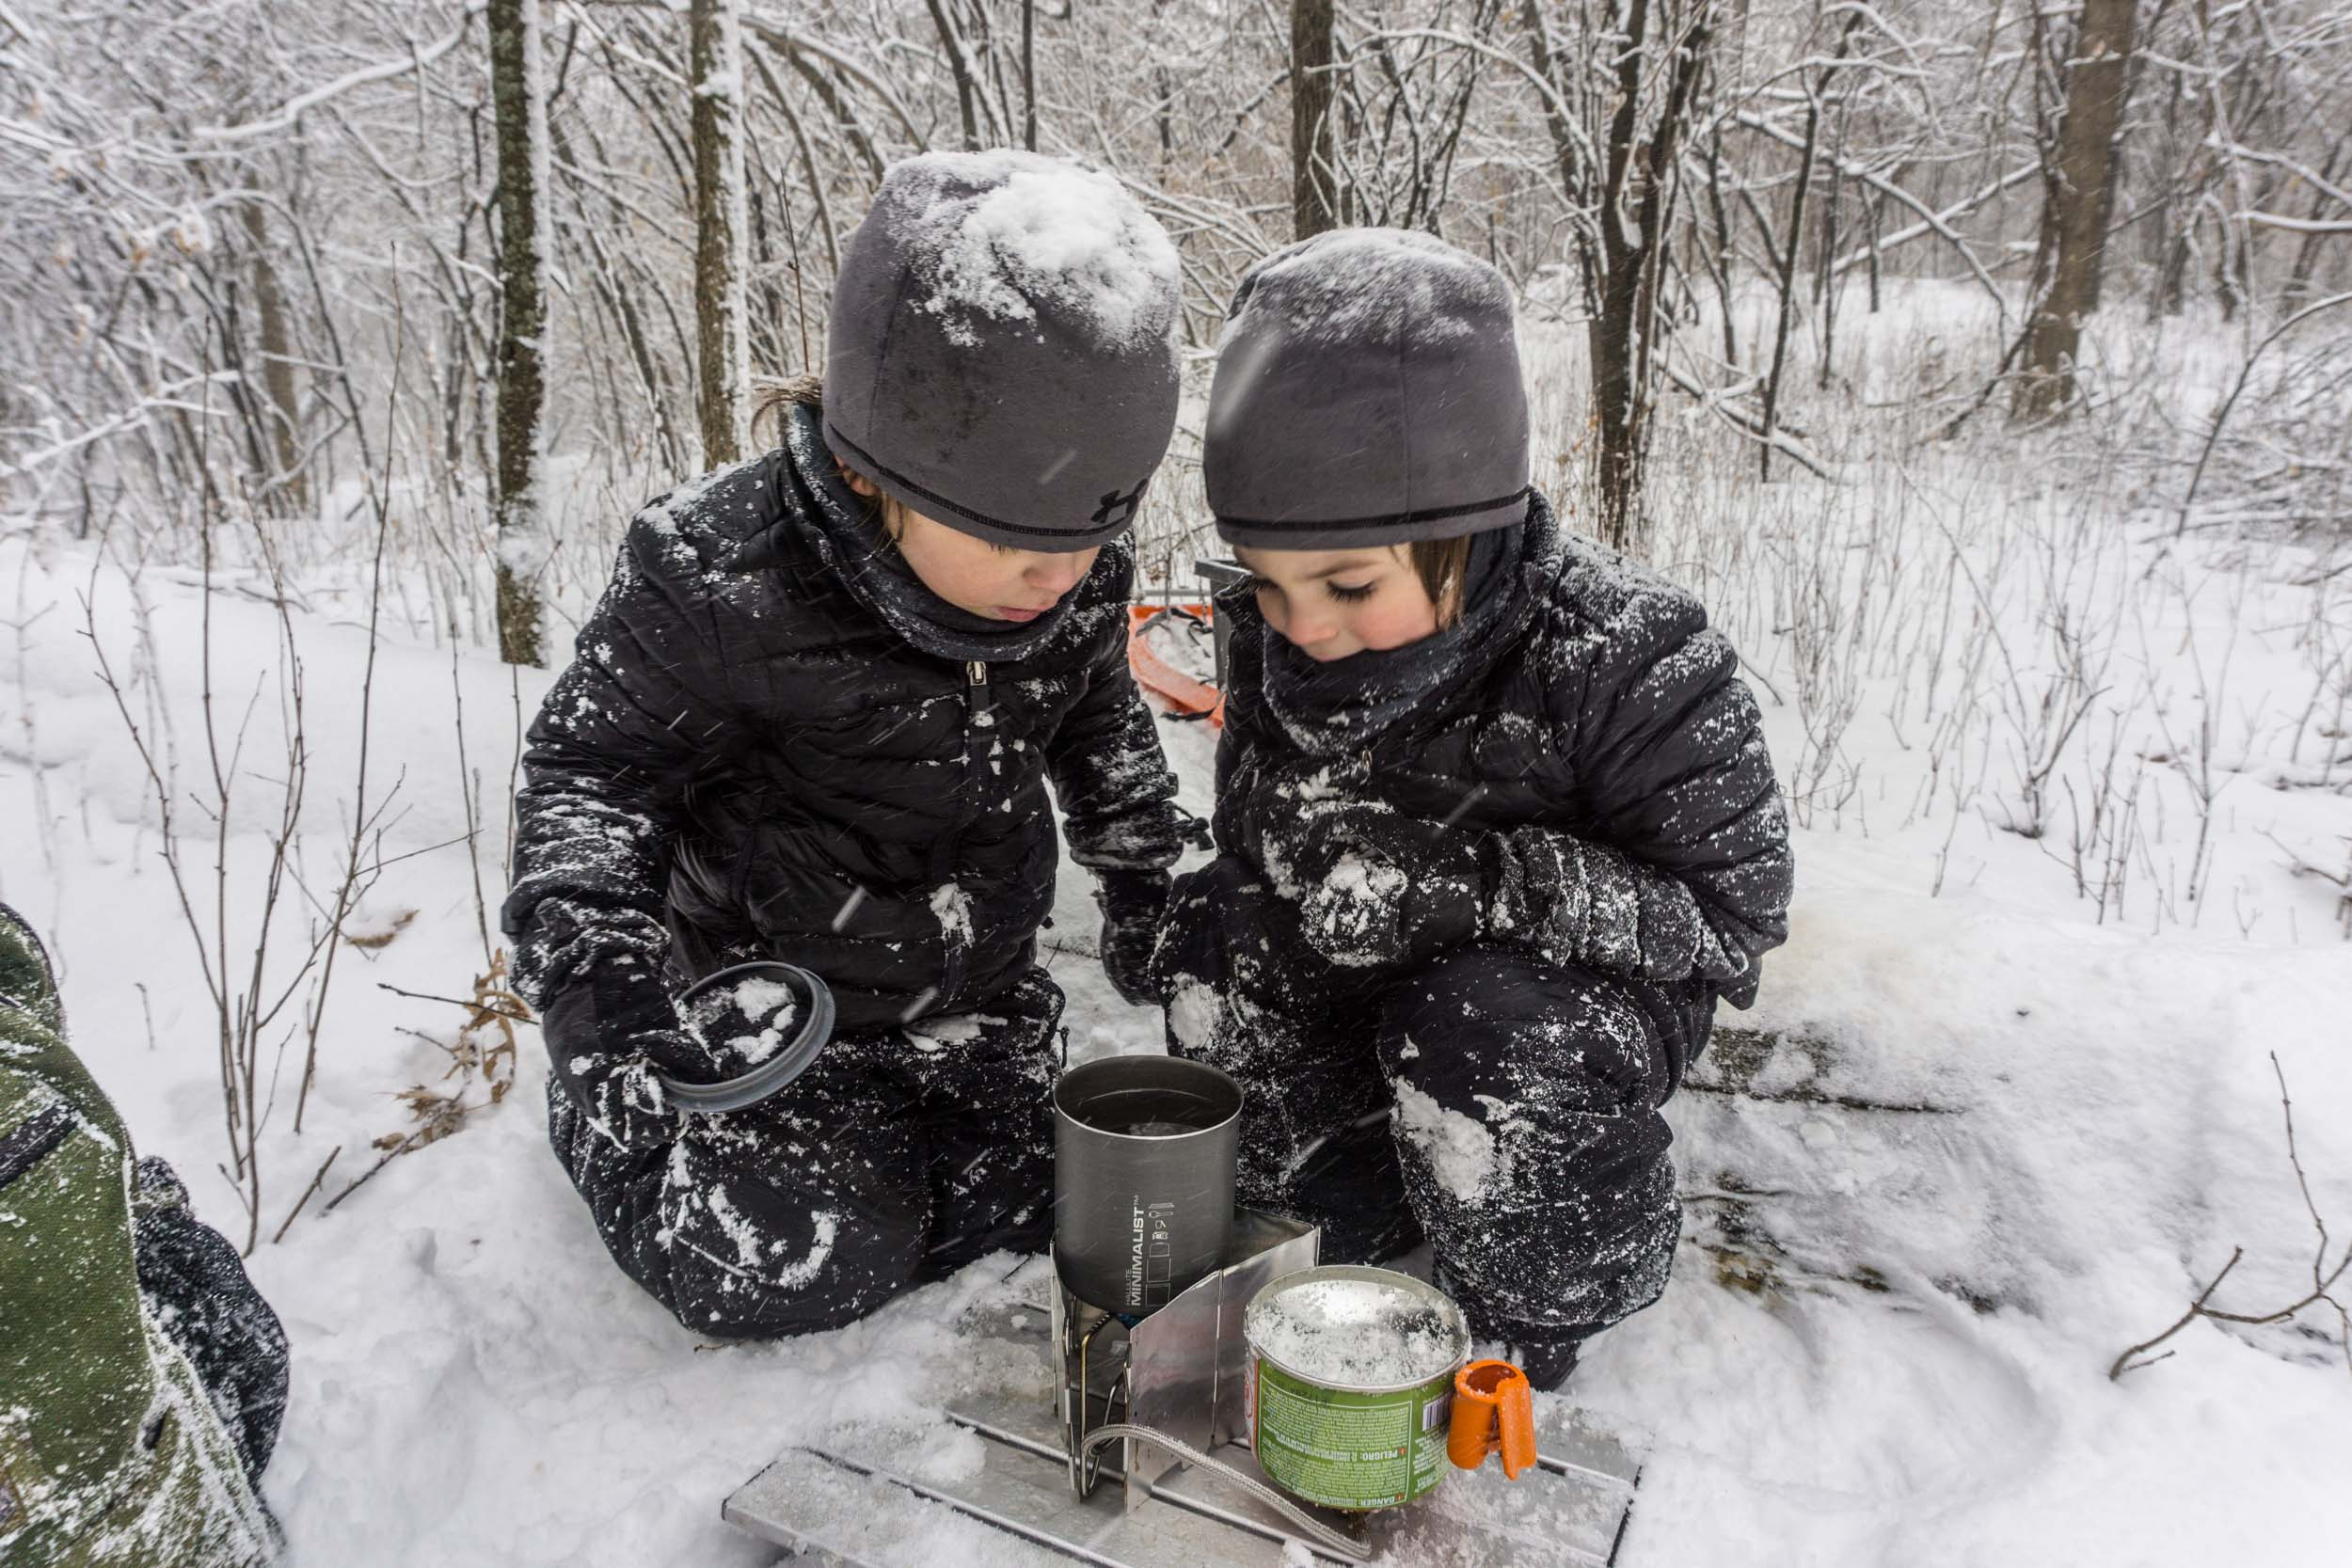 This is what Nick and the boys did today. 1.5 mile blizzard hike including a stop to make lunch in the woods and a stop at the playground. #mnboys #swedishpride #mntough #norwegianpride #nofear